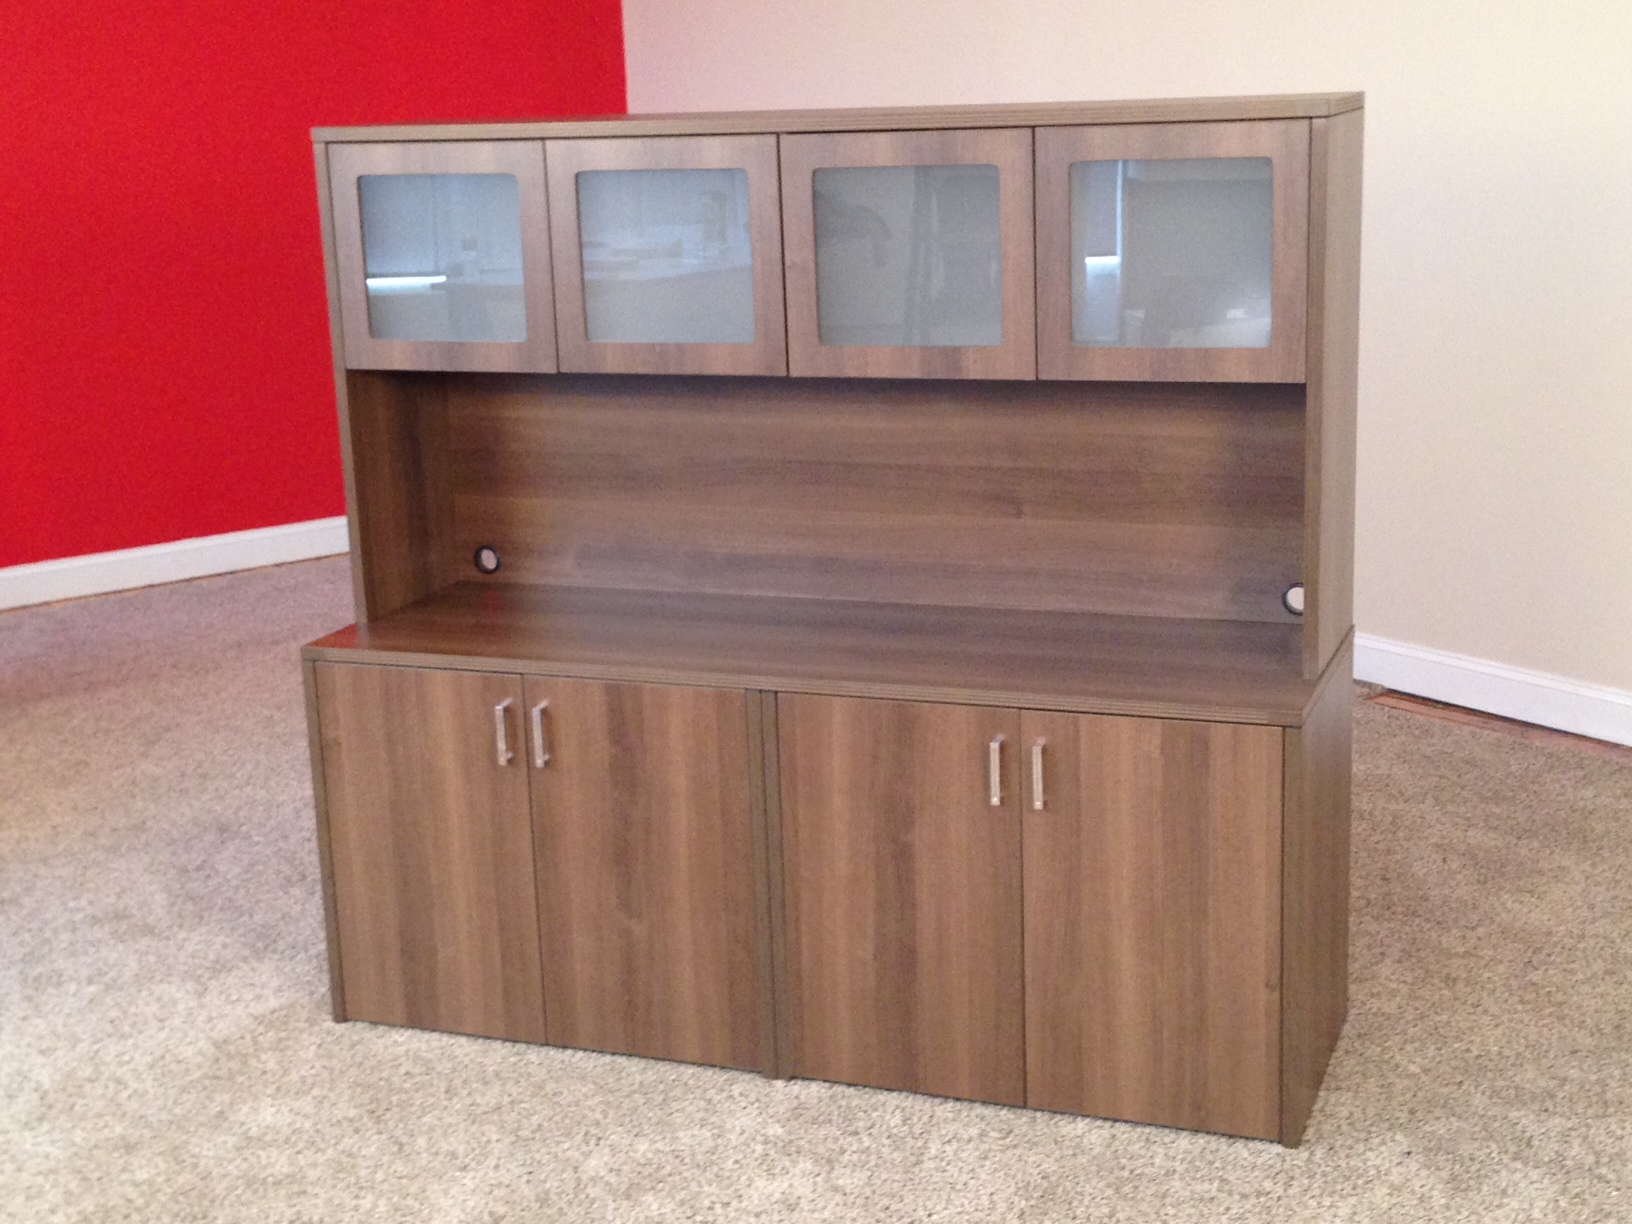 Affordable Office Storage Credenzas With 4 Door Hutch Granite State Office Furniture Manchester Nh